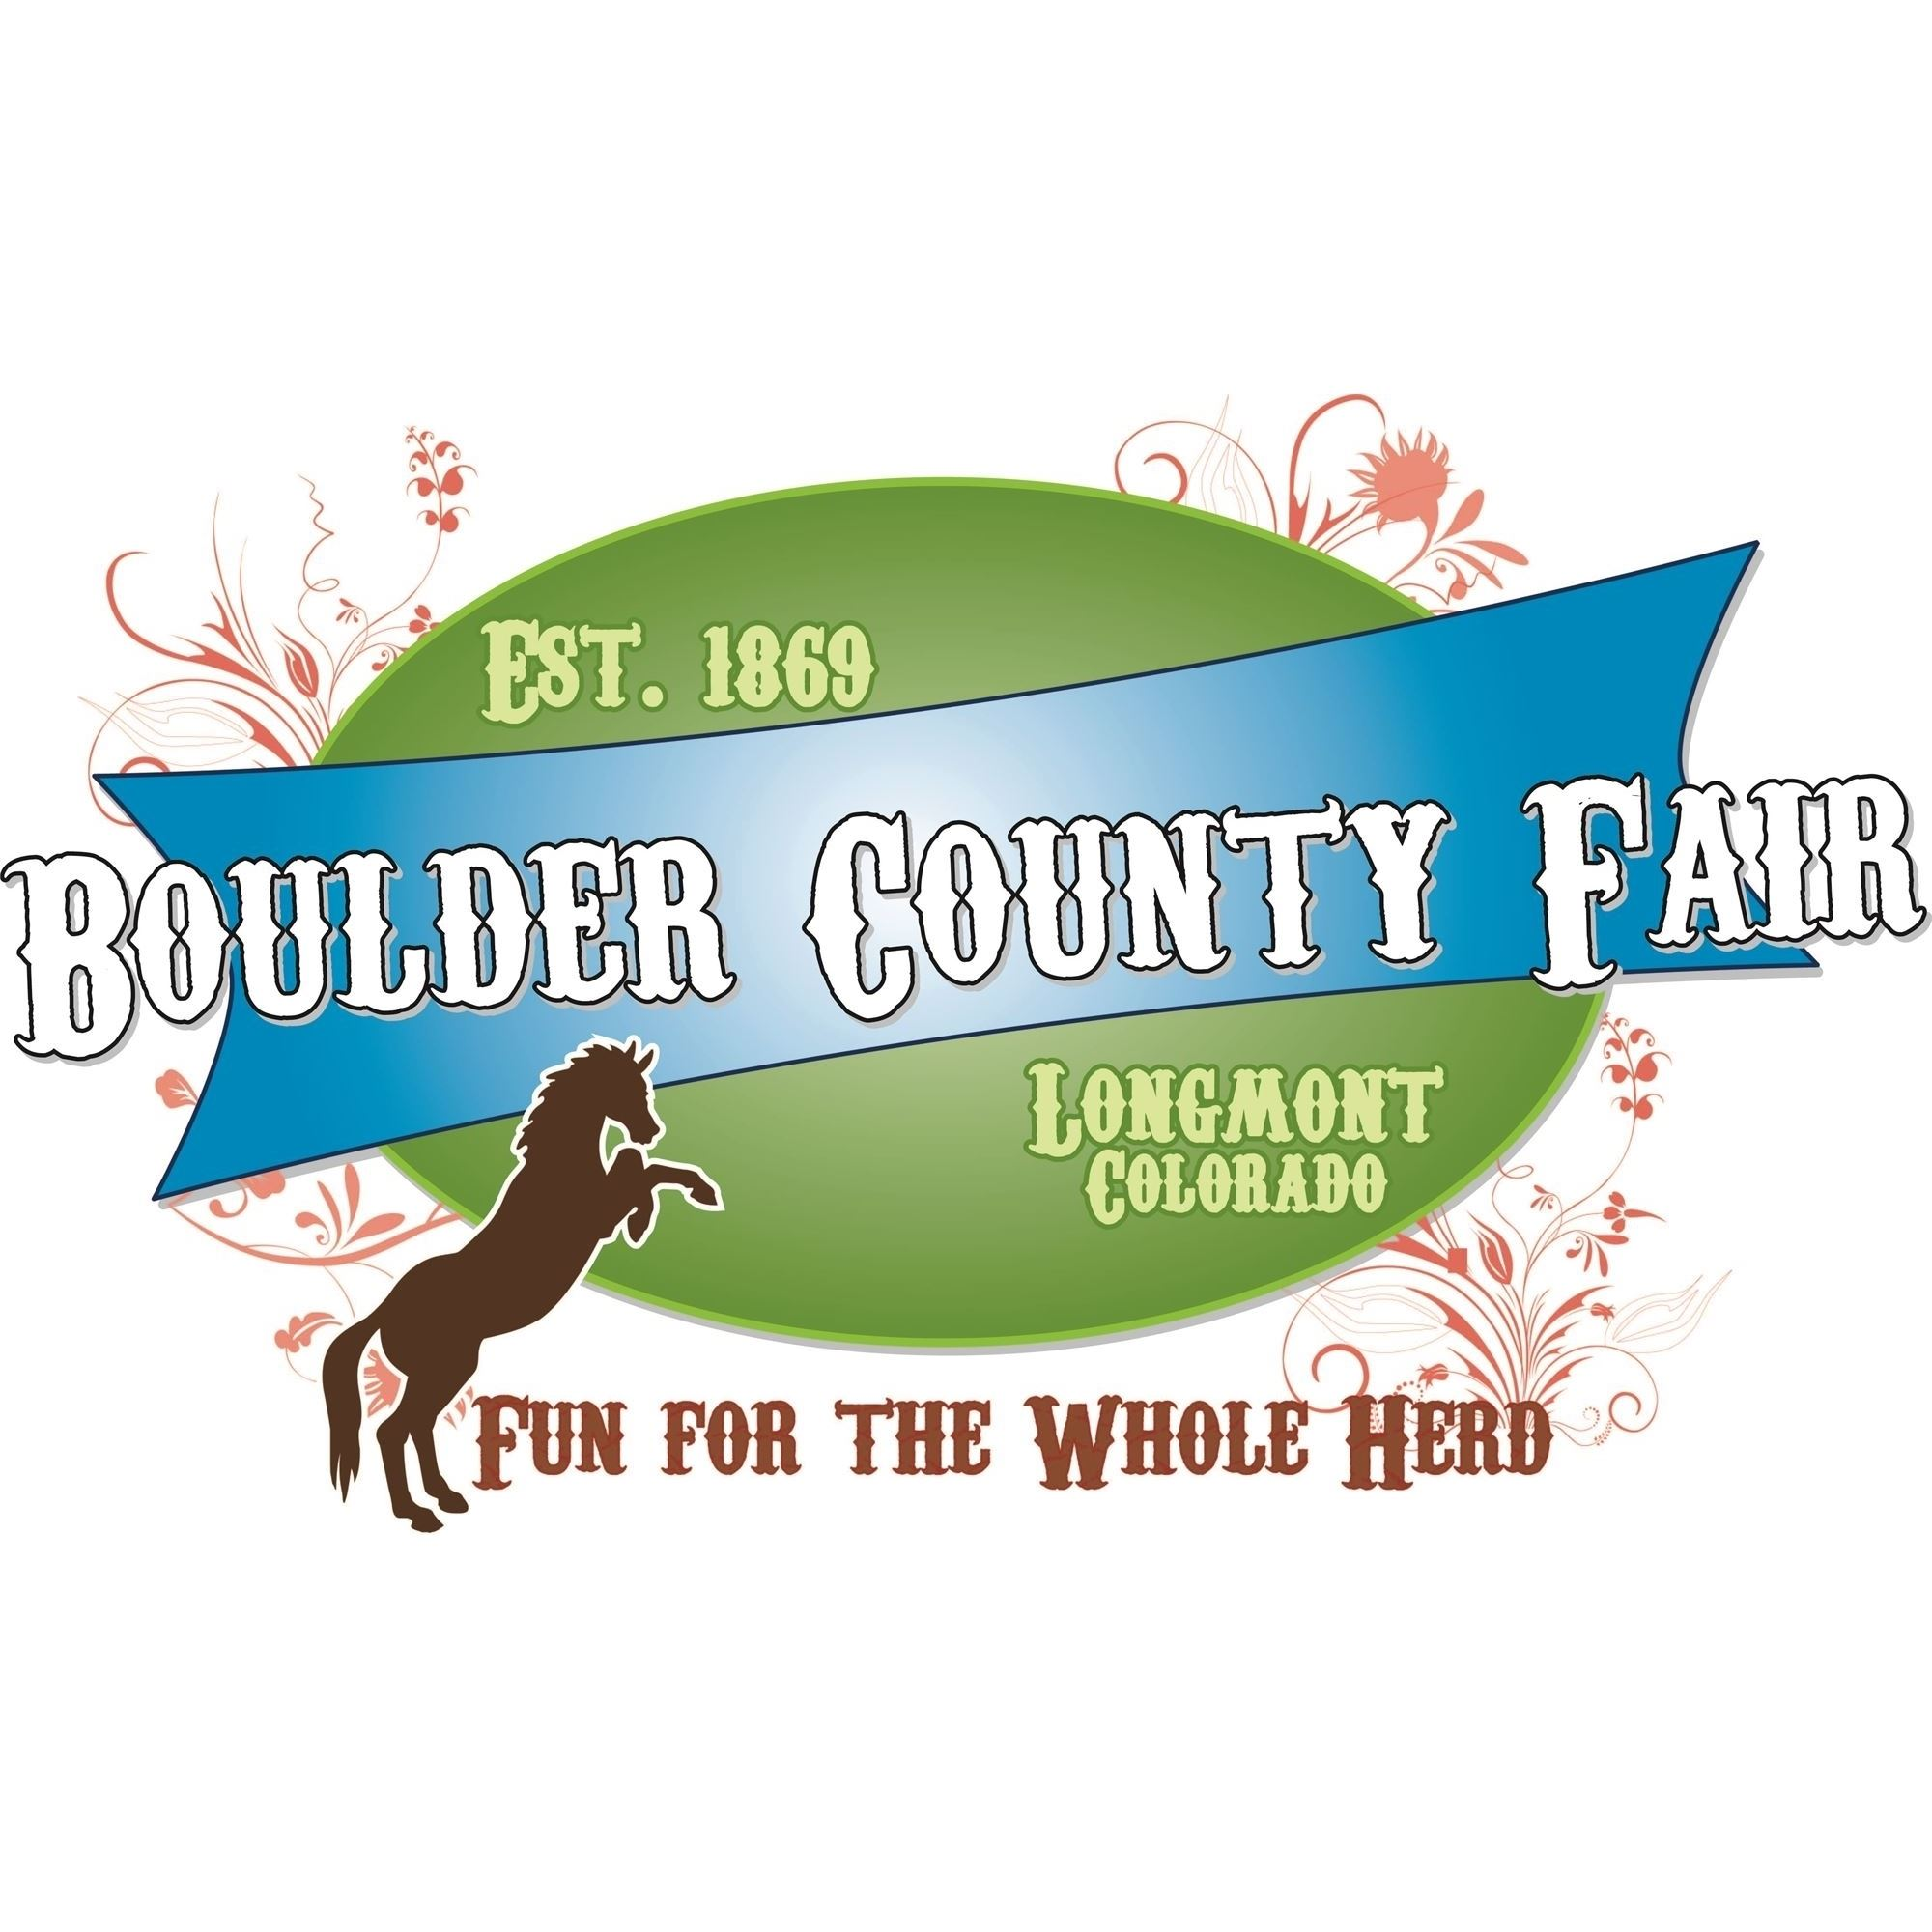 Boulder clipart aggregate. County fair longmont co